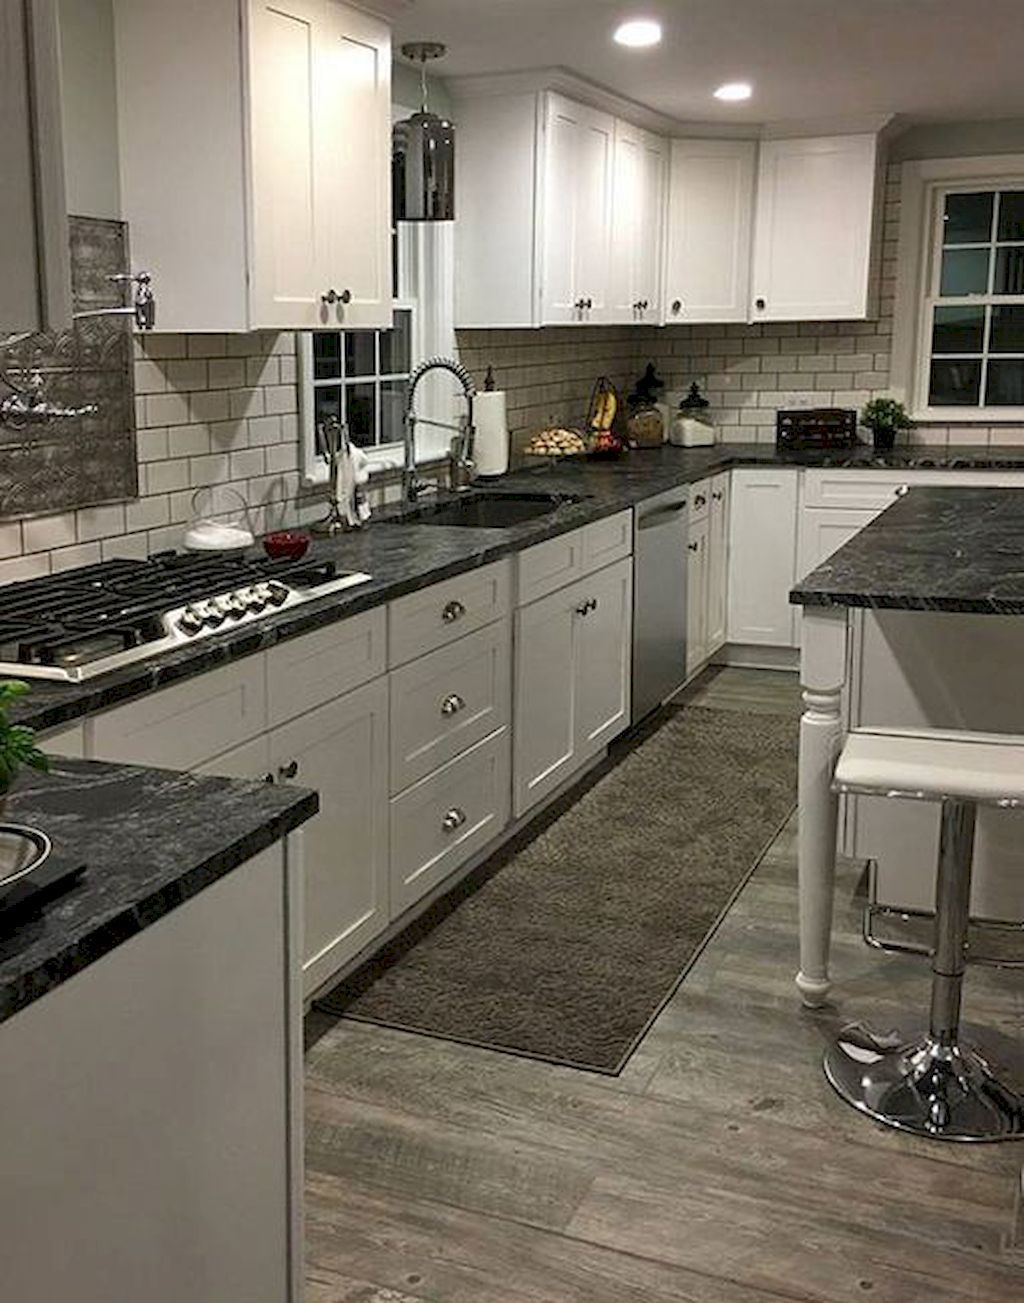 Kitchen Countertops Laminate Kitchen Remodel Countertops New Kitchen Cabinets In 2020 Kitchen Remodel Countertops Kitchen Countertops Laminate Kitchen Cabinets